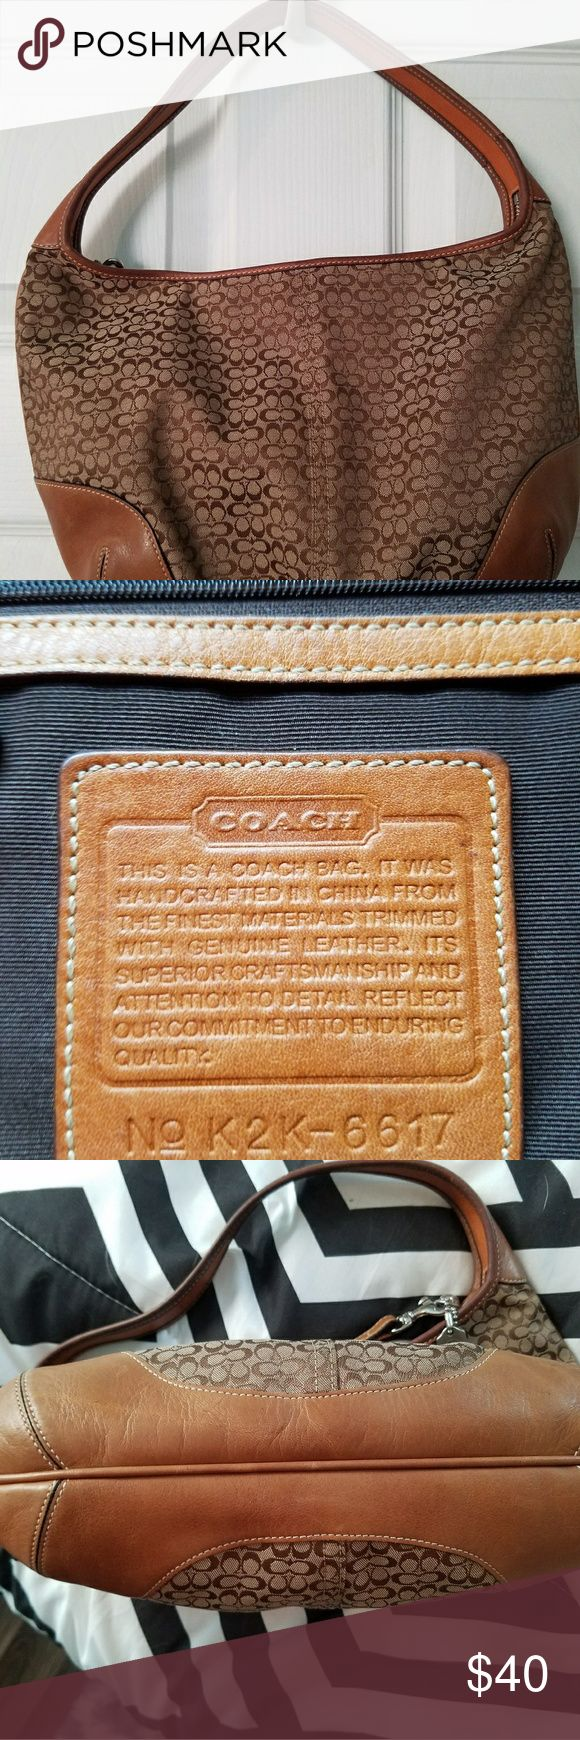 Coach hobo bag In excellent condition! No stains or tears. Coach Bags Hobos